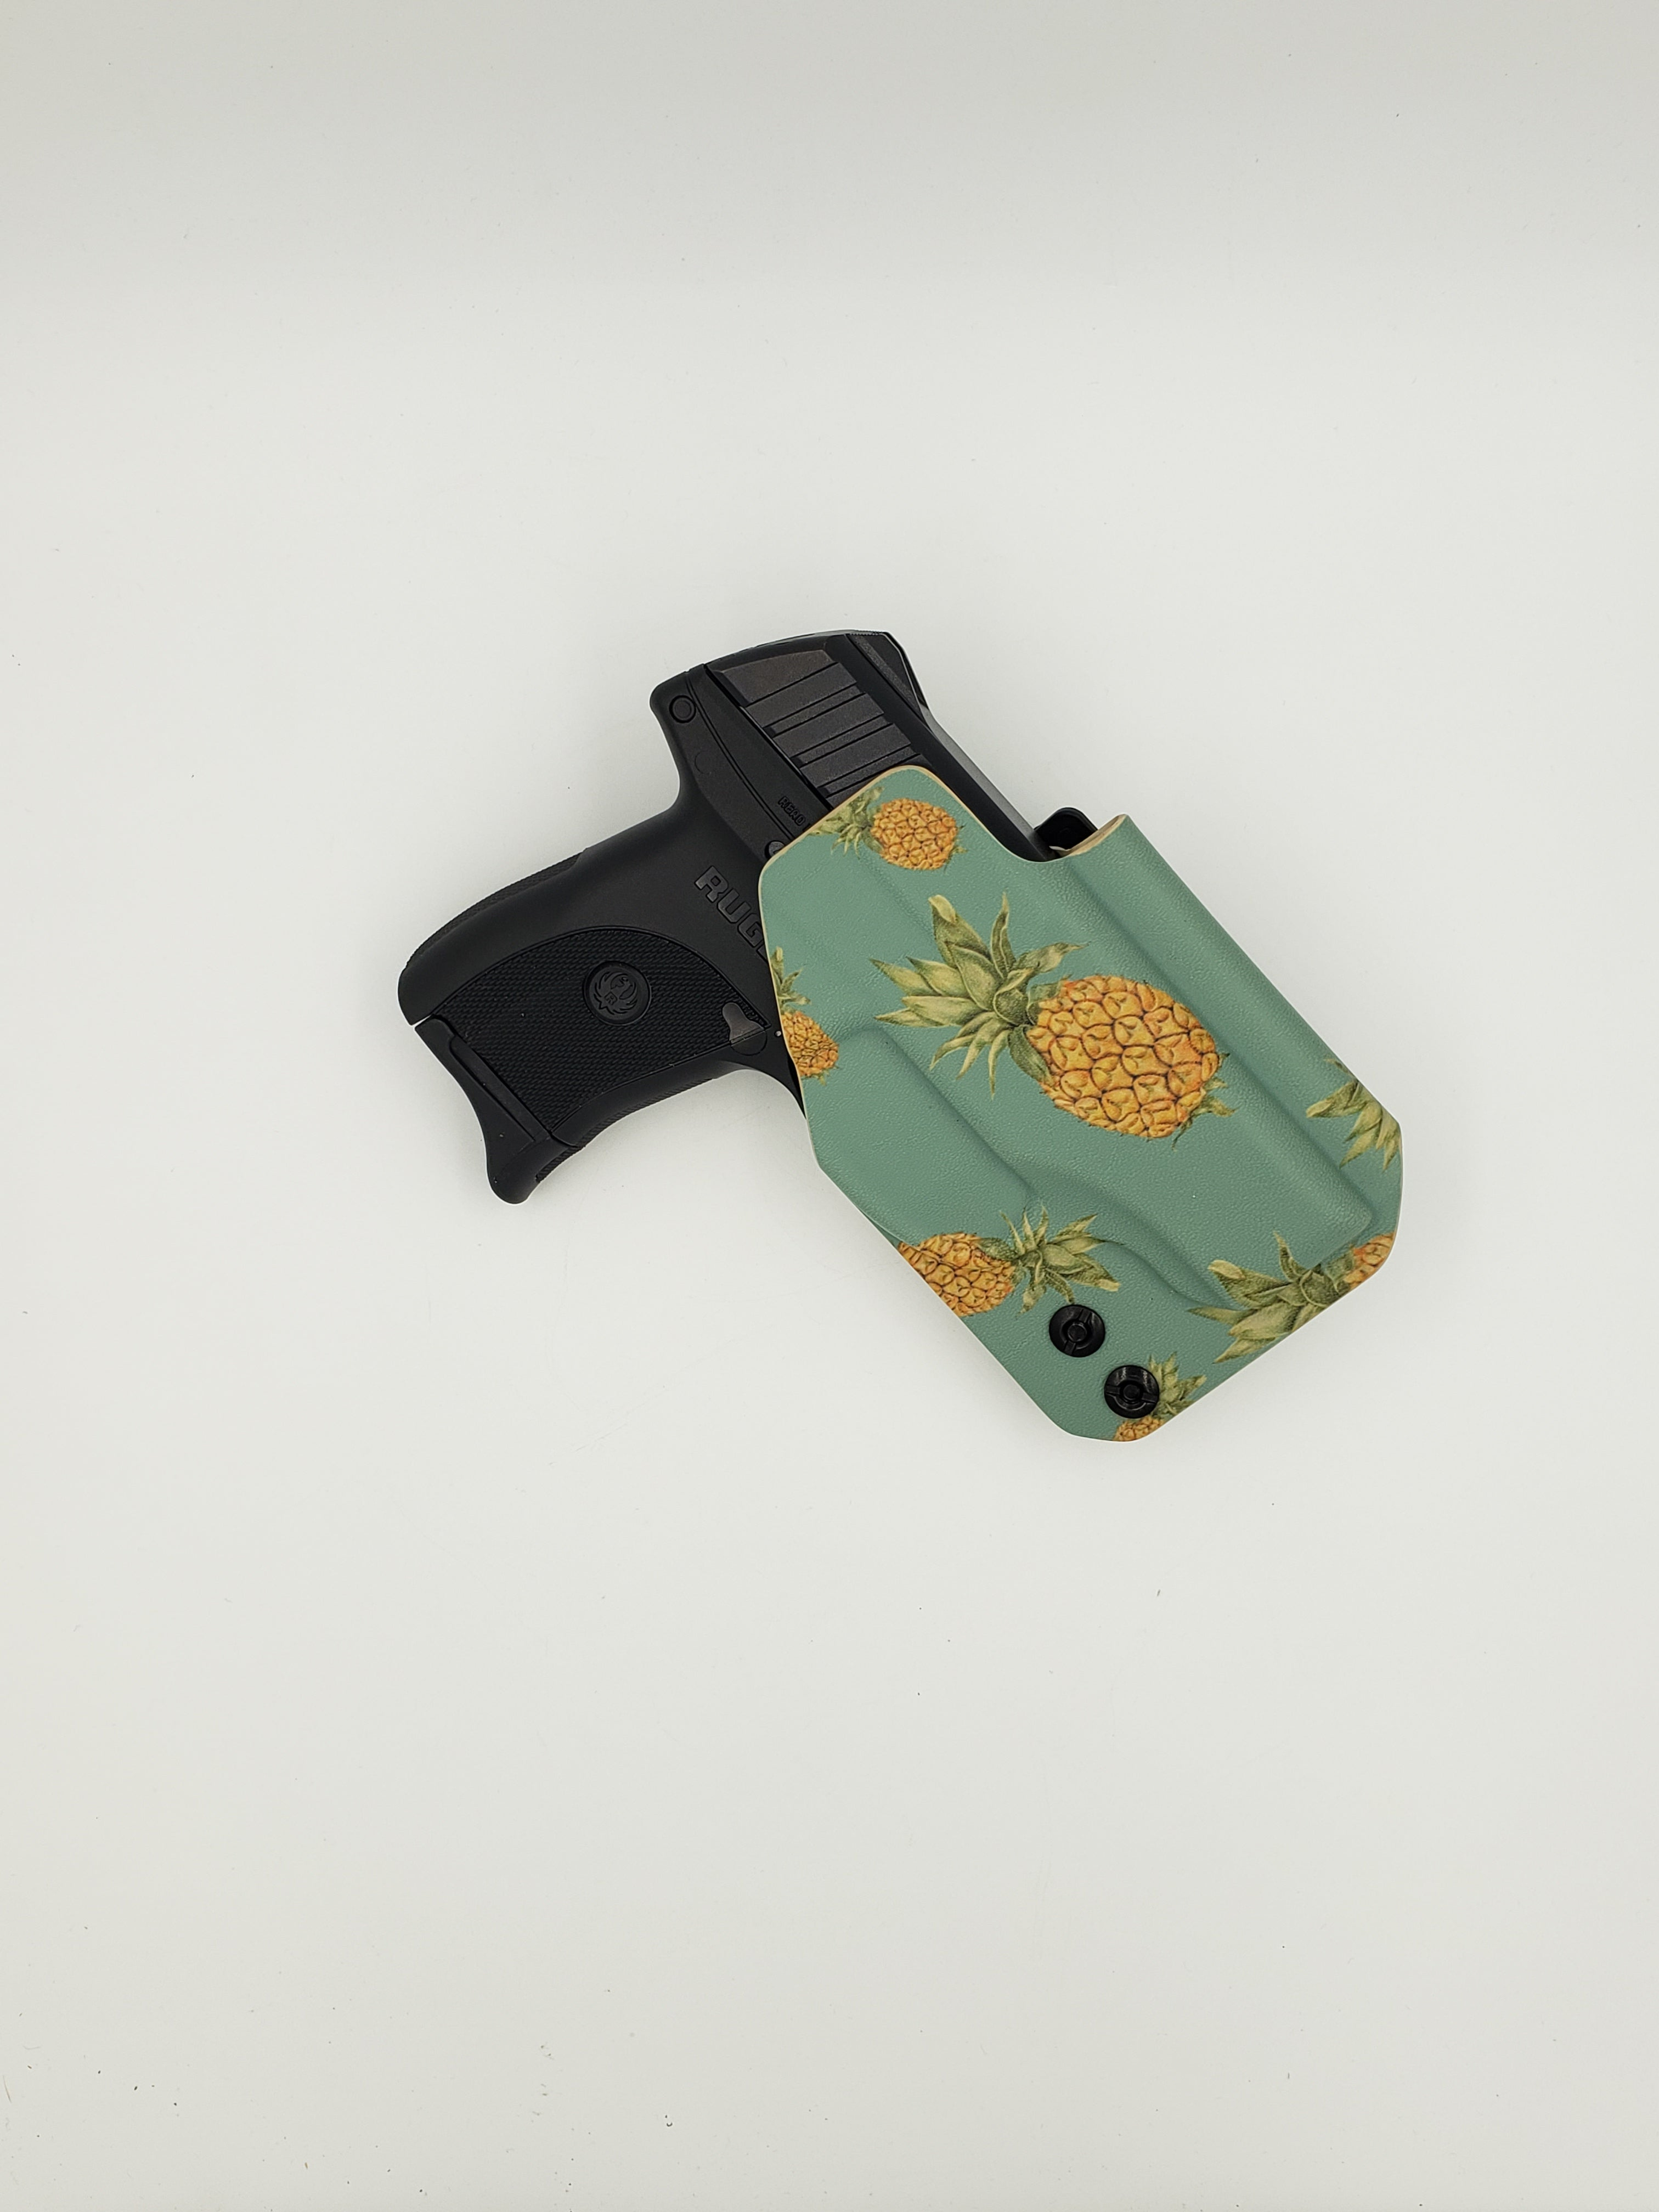 Teal Pineapple IWB Kydex Holster - Ruger LC9(s)